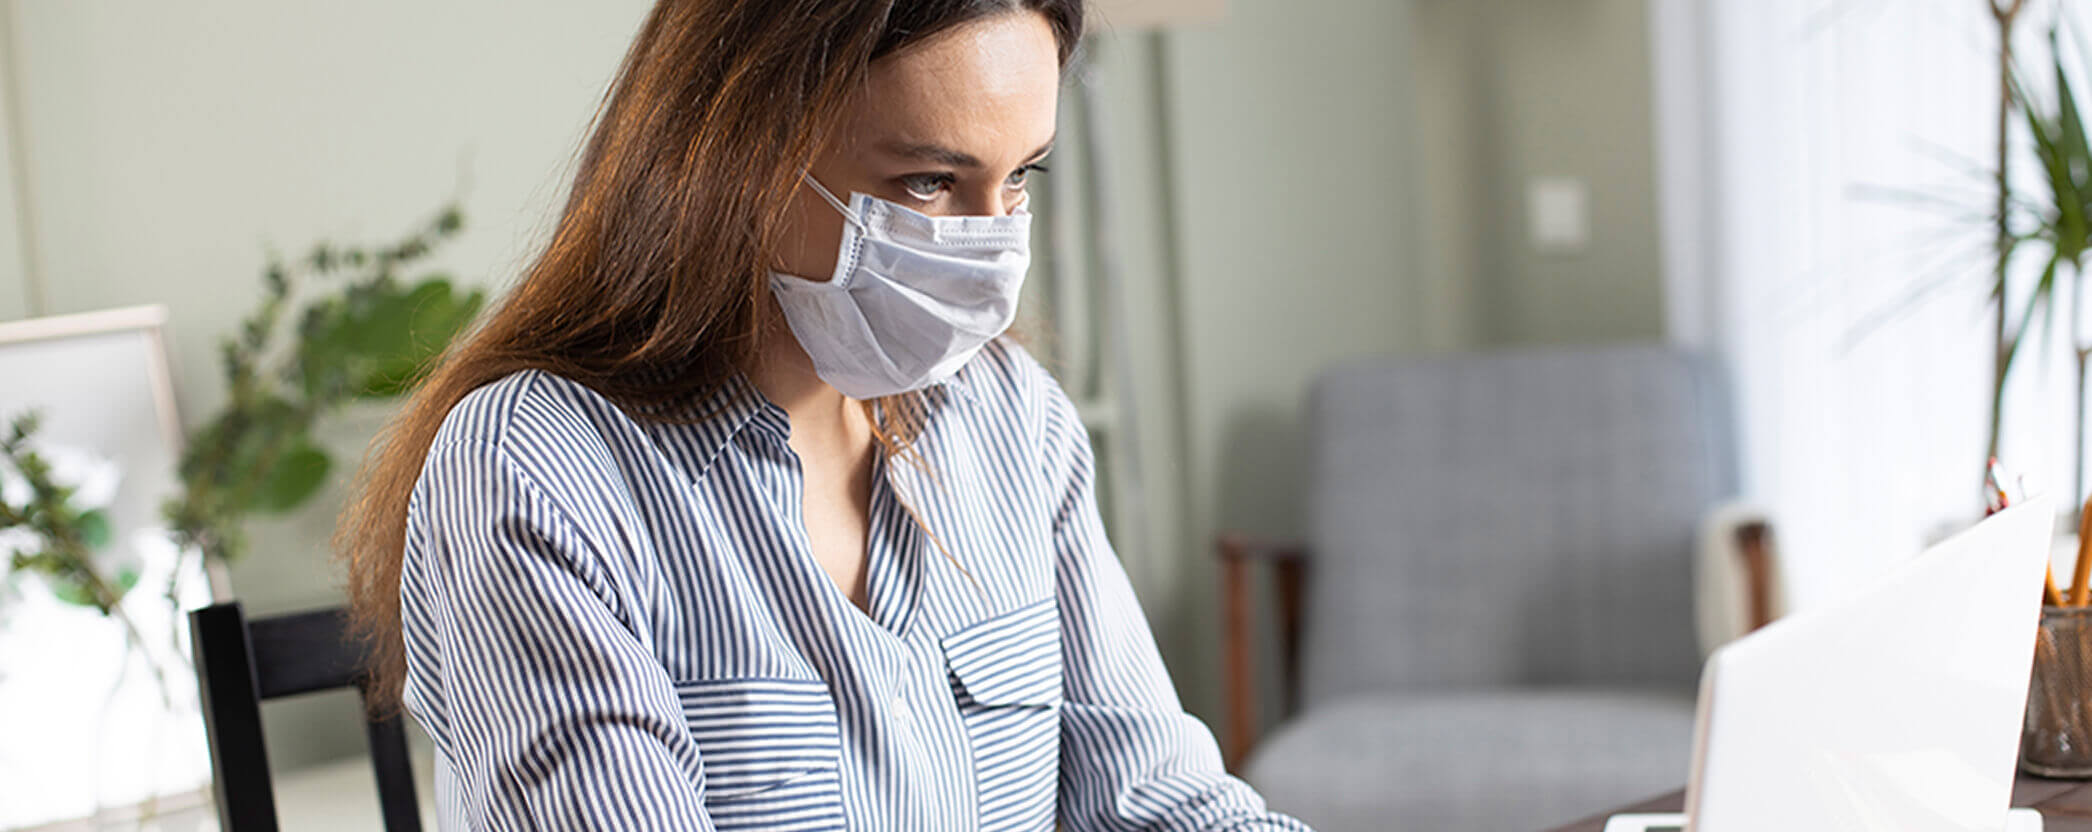 A female office worker wears a mask as she looks at her computer screen.